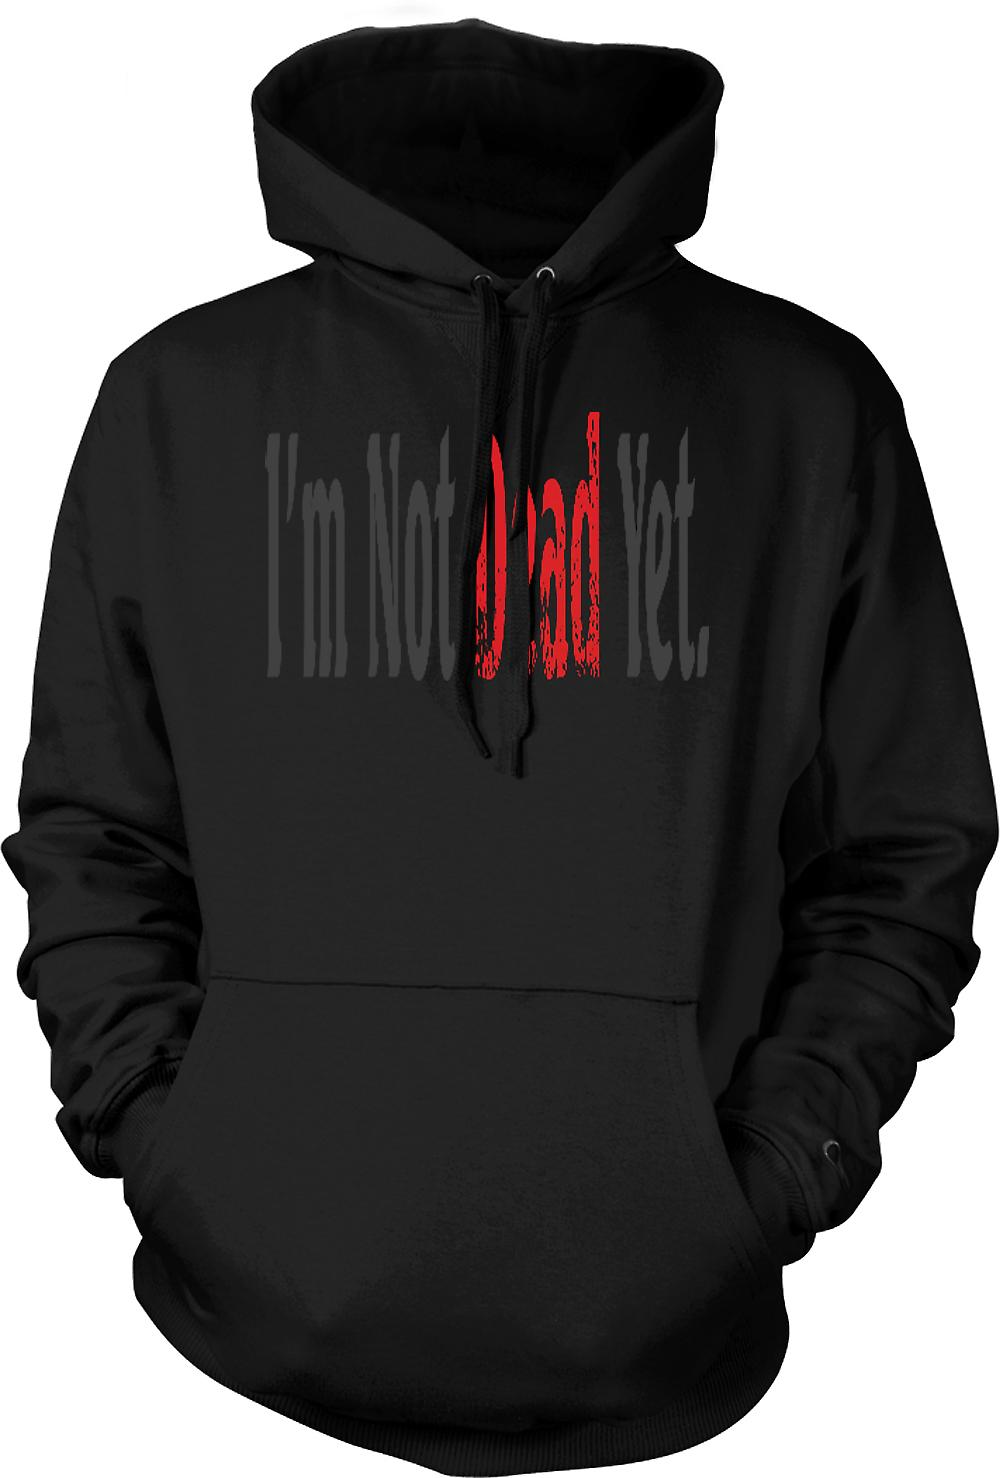 Mens Hoodie - Im Not Dead yet - Funny joke